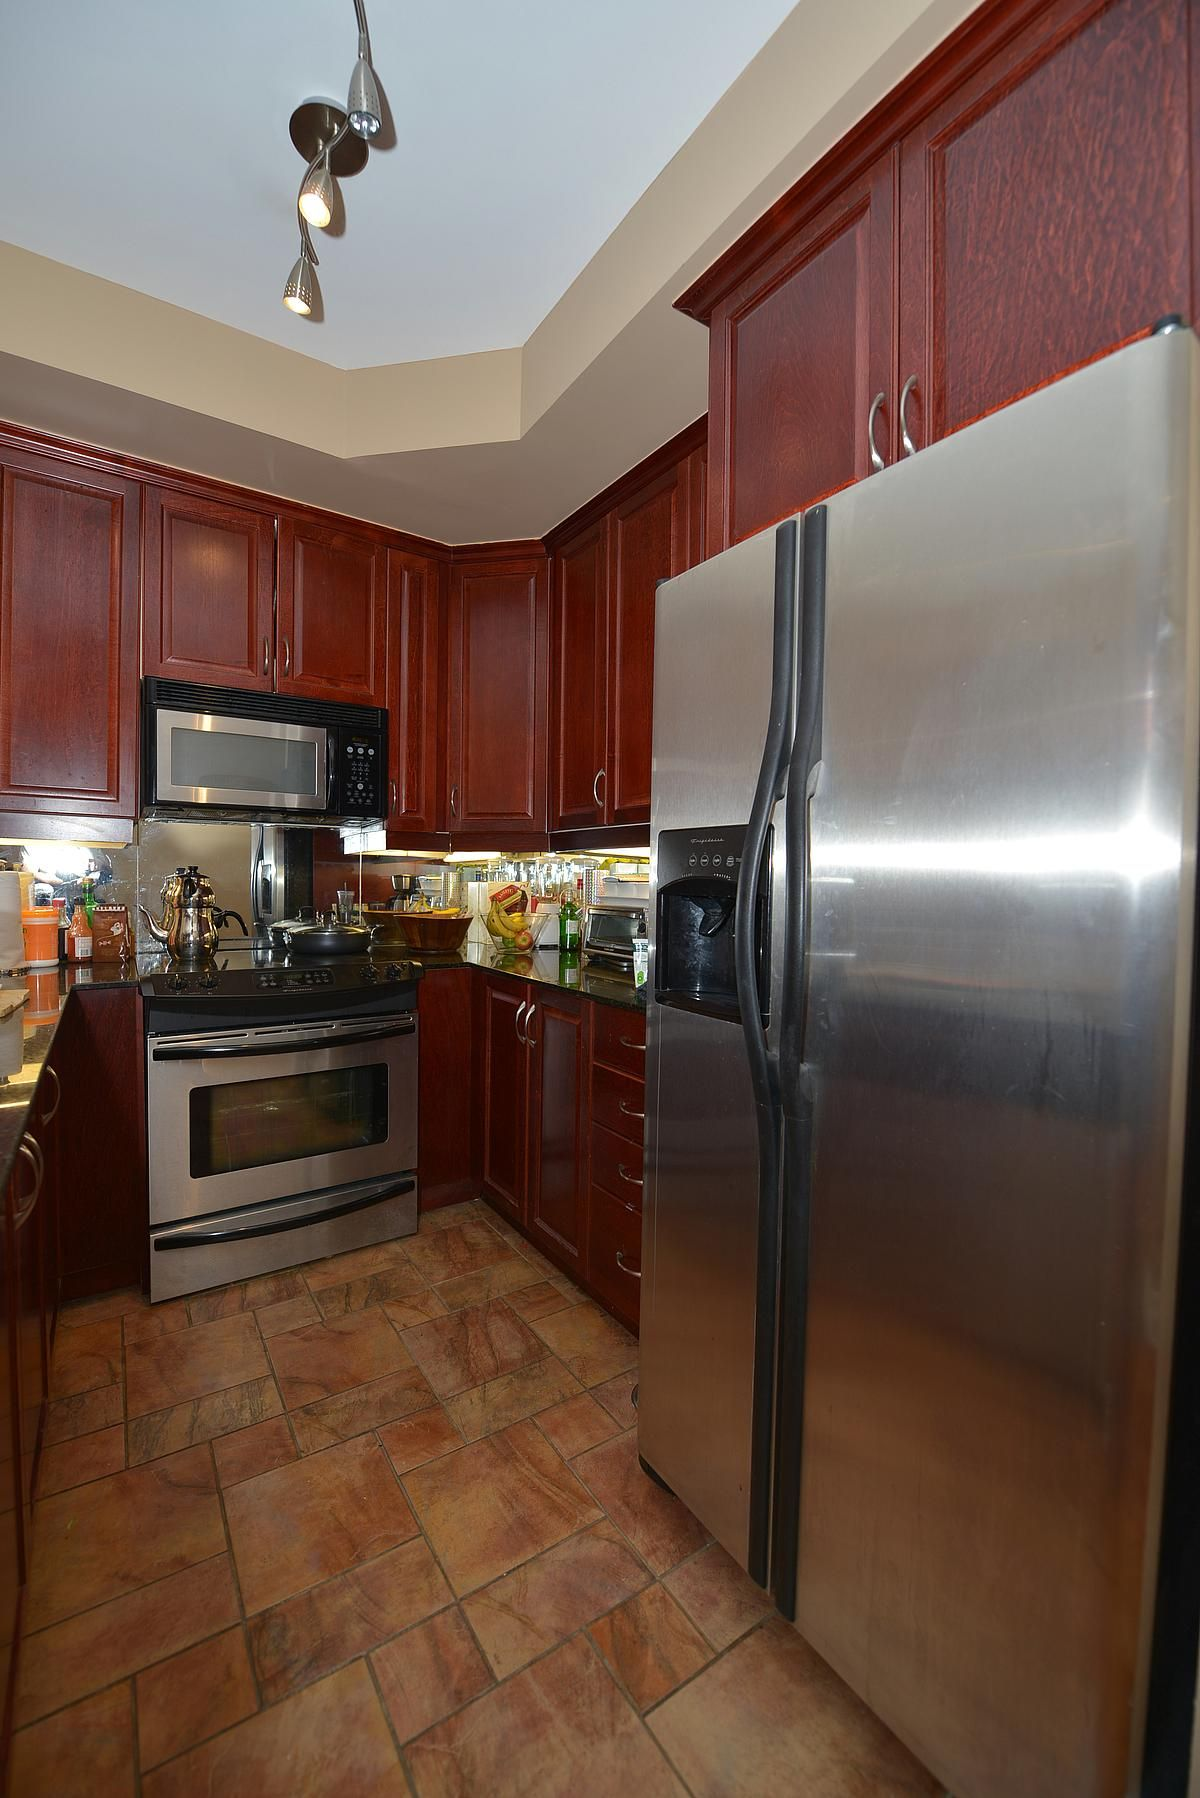 kitchen michael j allan real estate home decor kitchen granite countertops on j kitchen id=68767